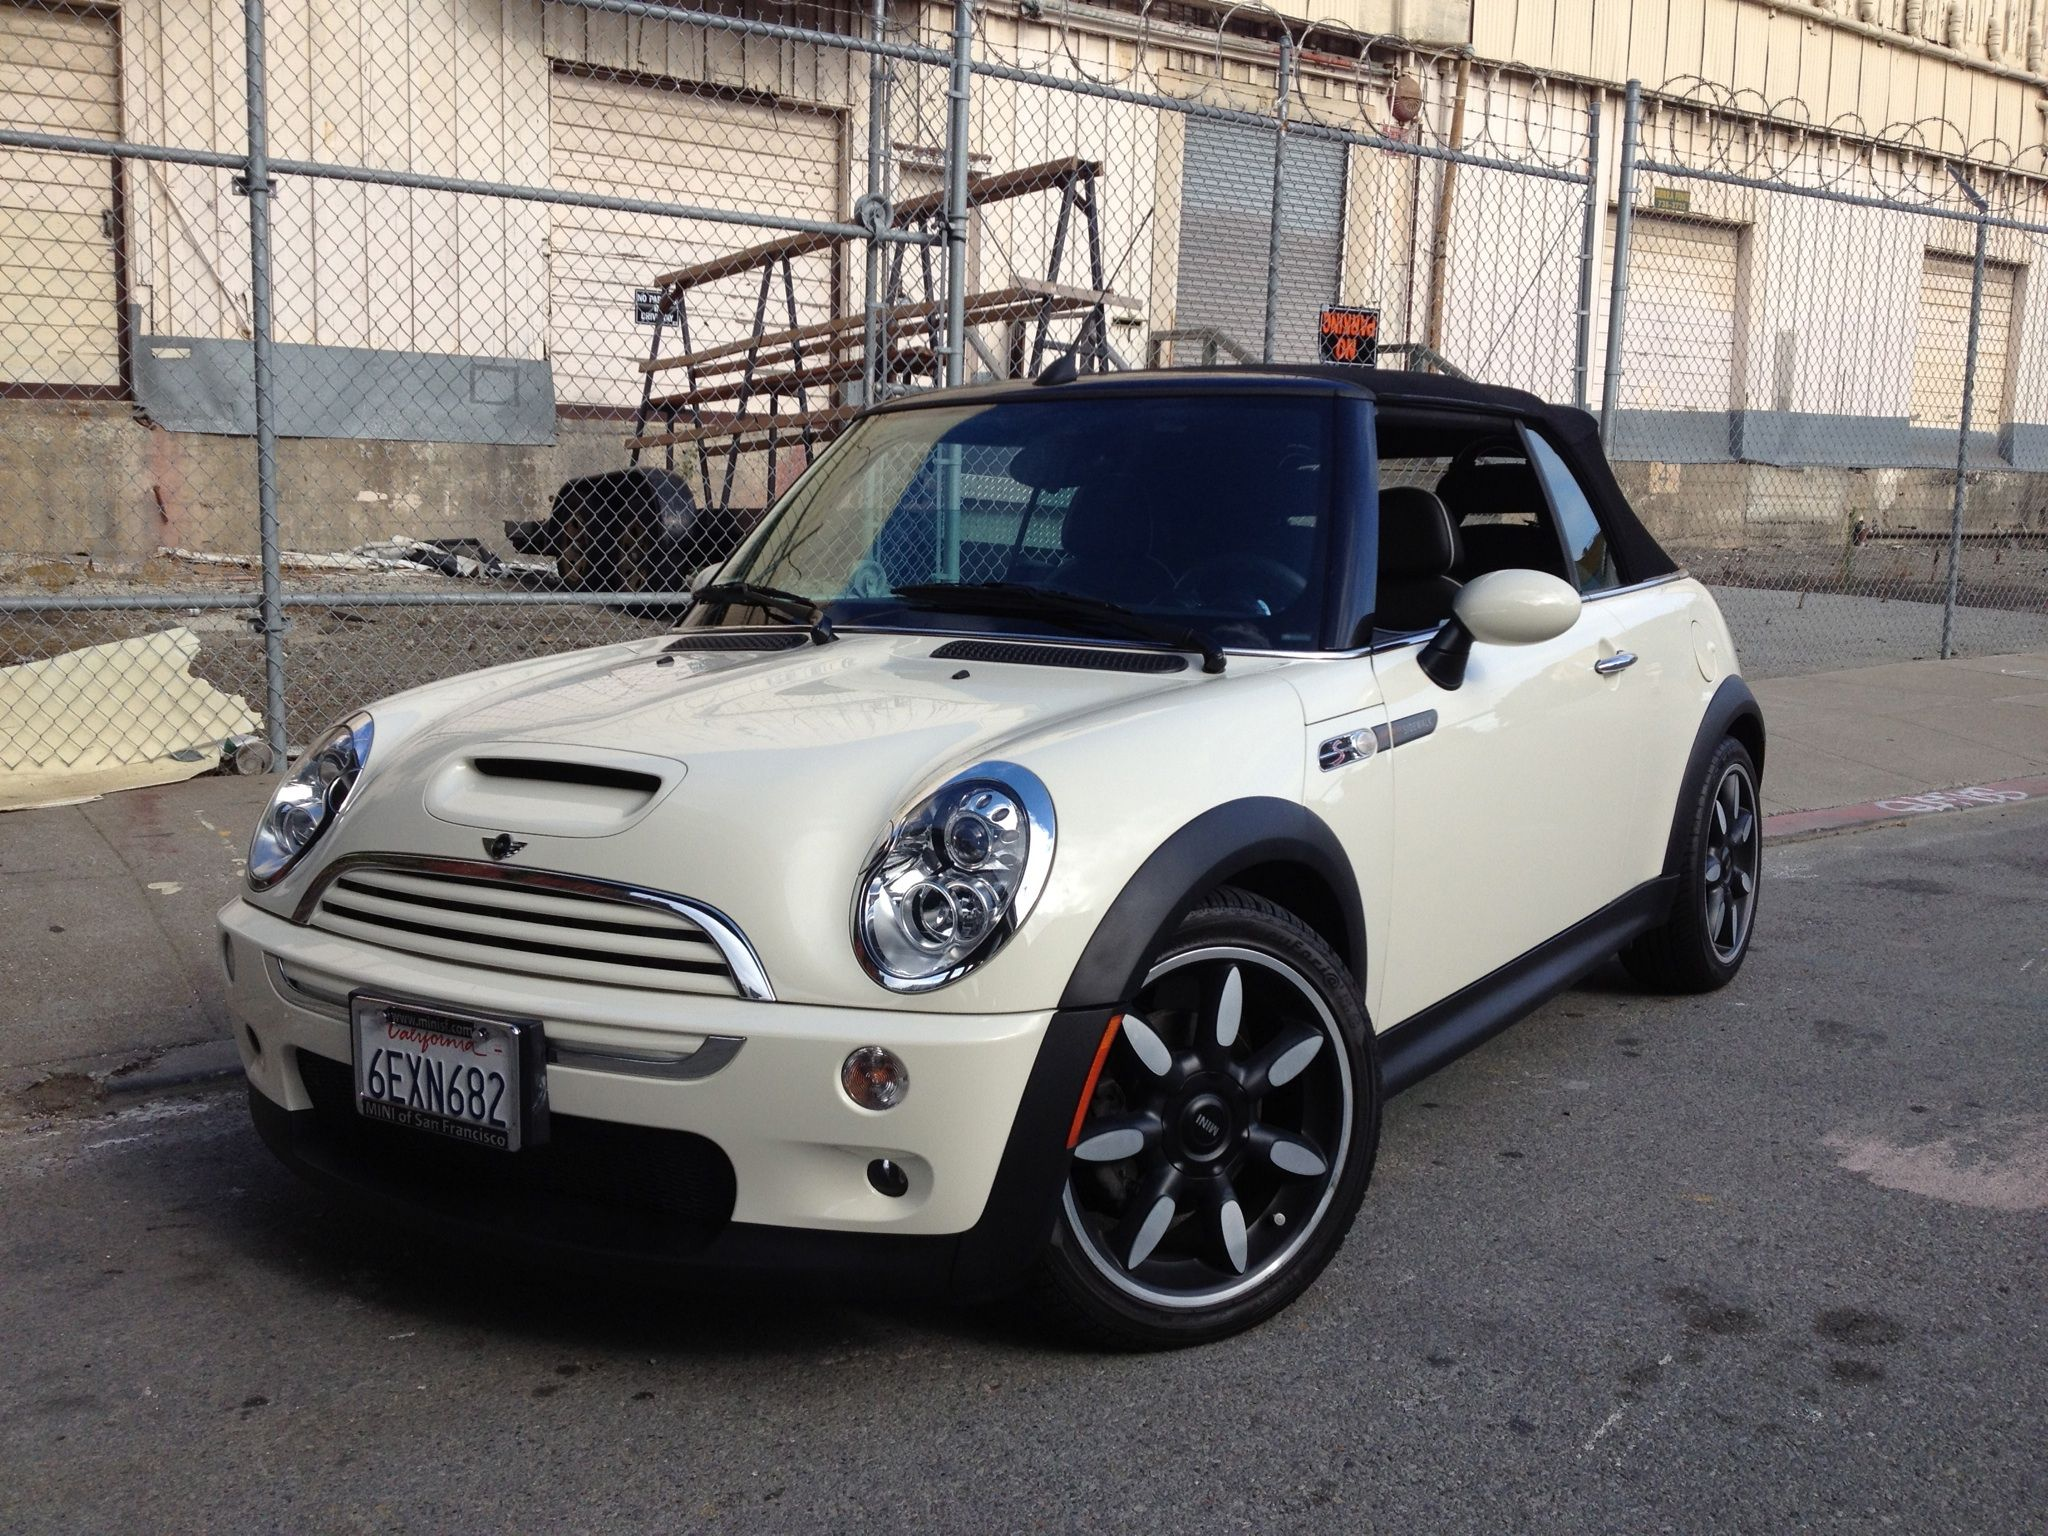 2008 Mini Cooper S Convertible Sidewalk Edition Mini Cooper Mini Cooper S Hot Rides